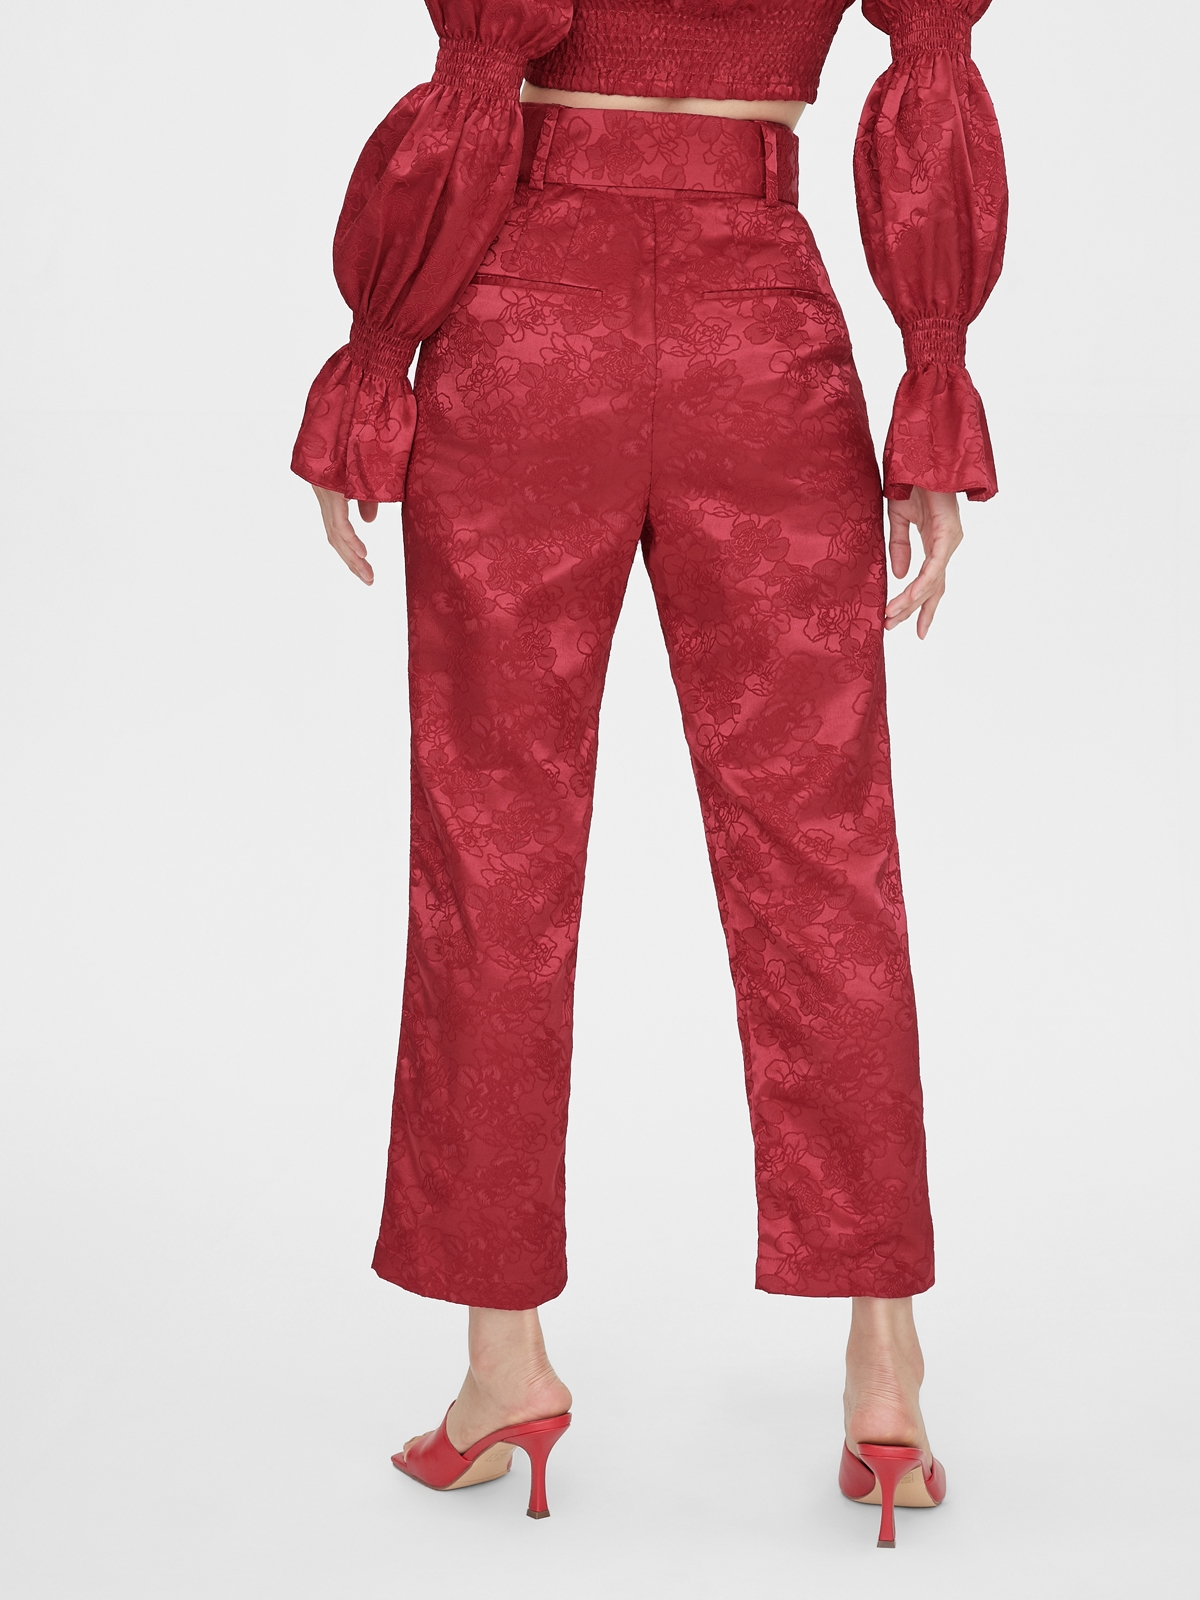 Matter Makers Satin Jacquard Classic Trousers Red